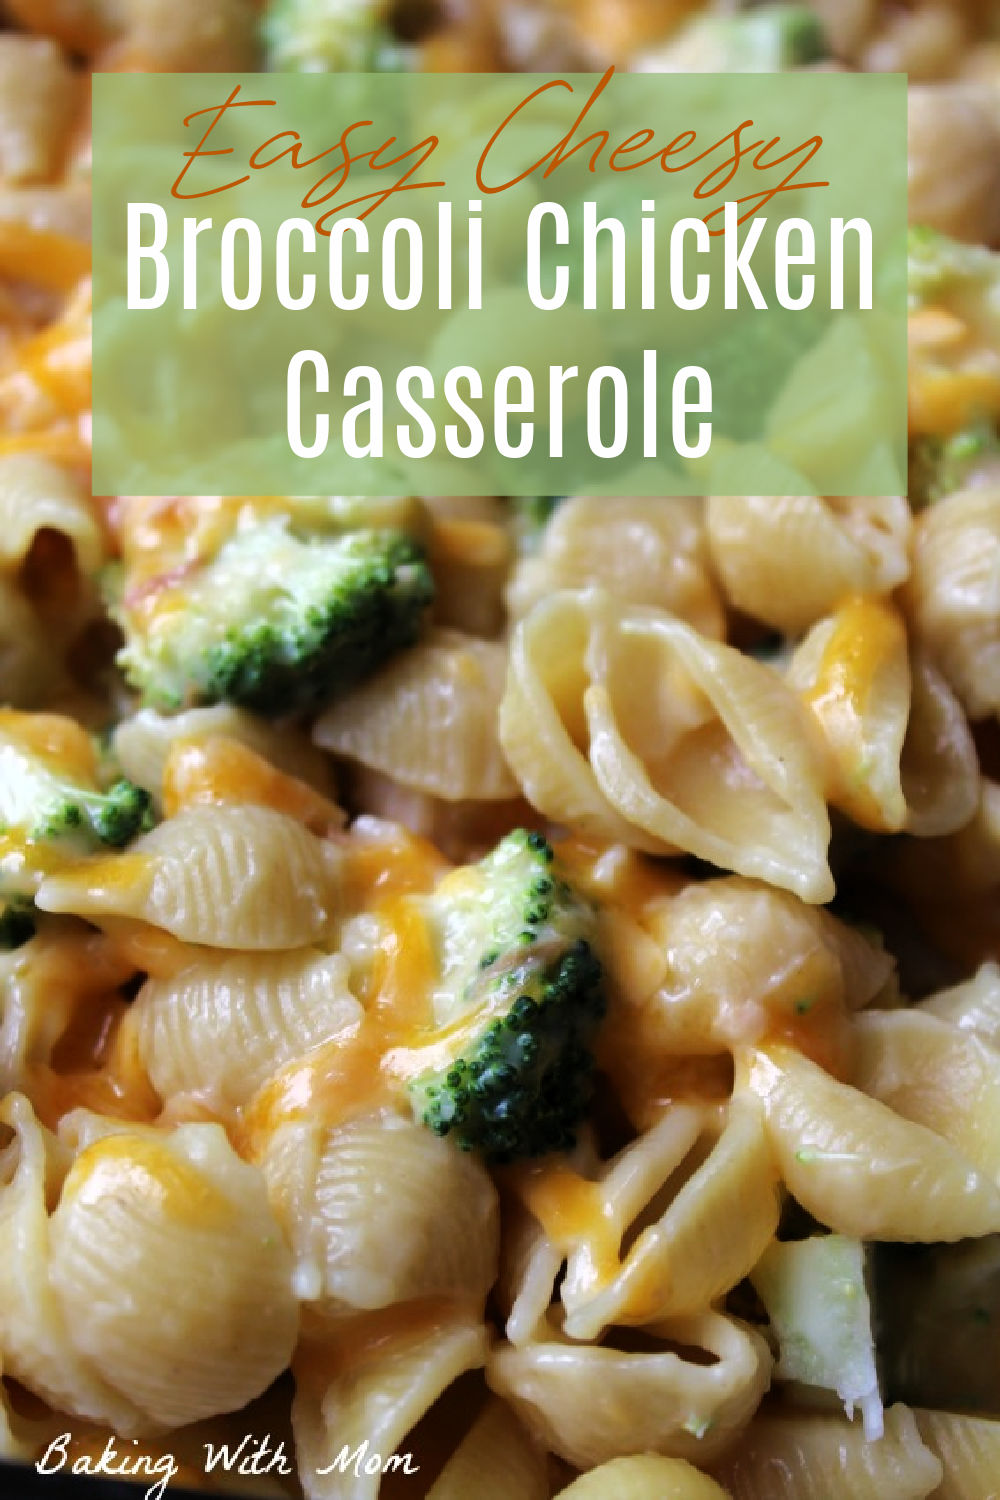 Close up of chicken casserole with broccoli.